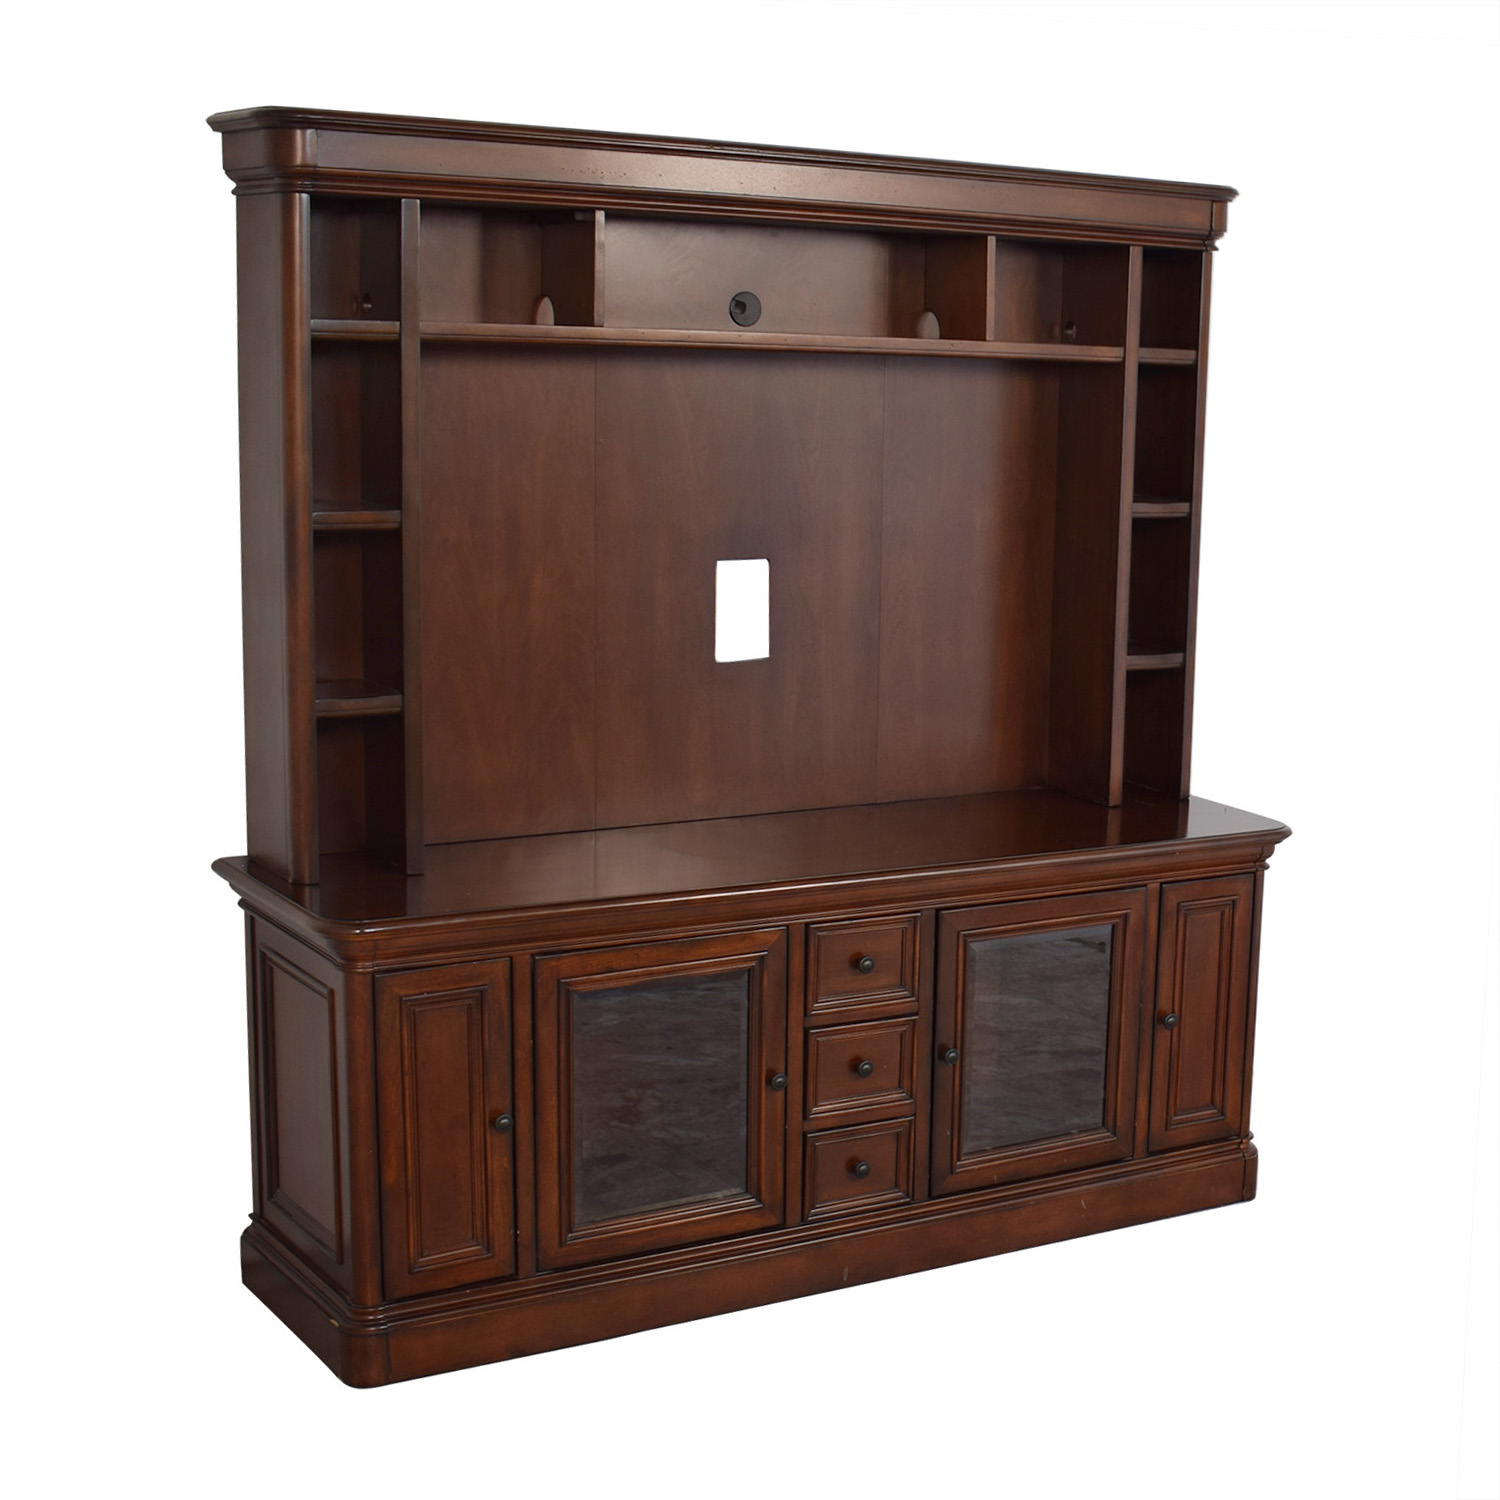 Golden Oak Furniture Golden Oak Furniture Entertainment Center nj